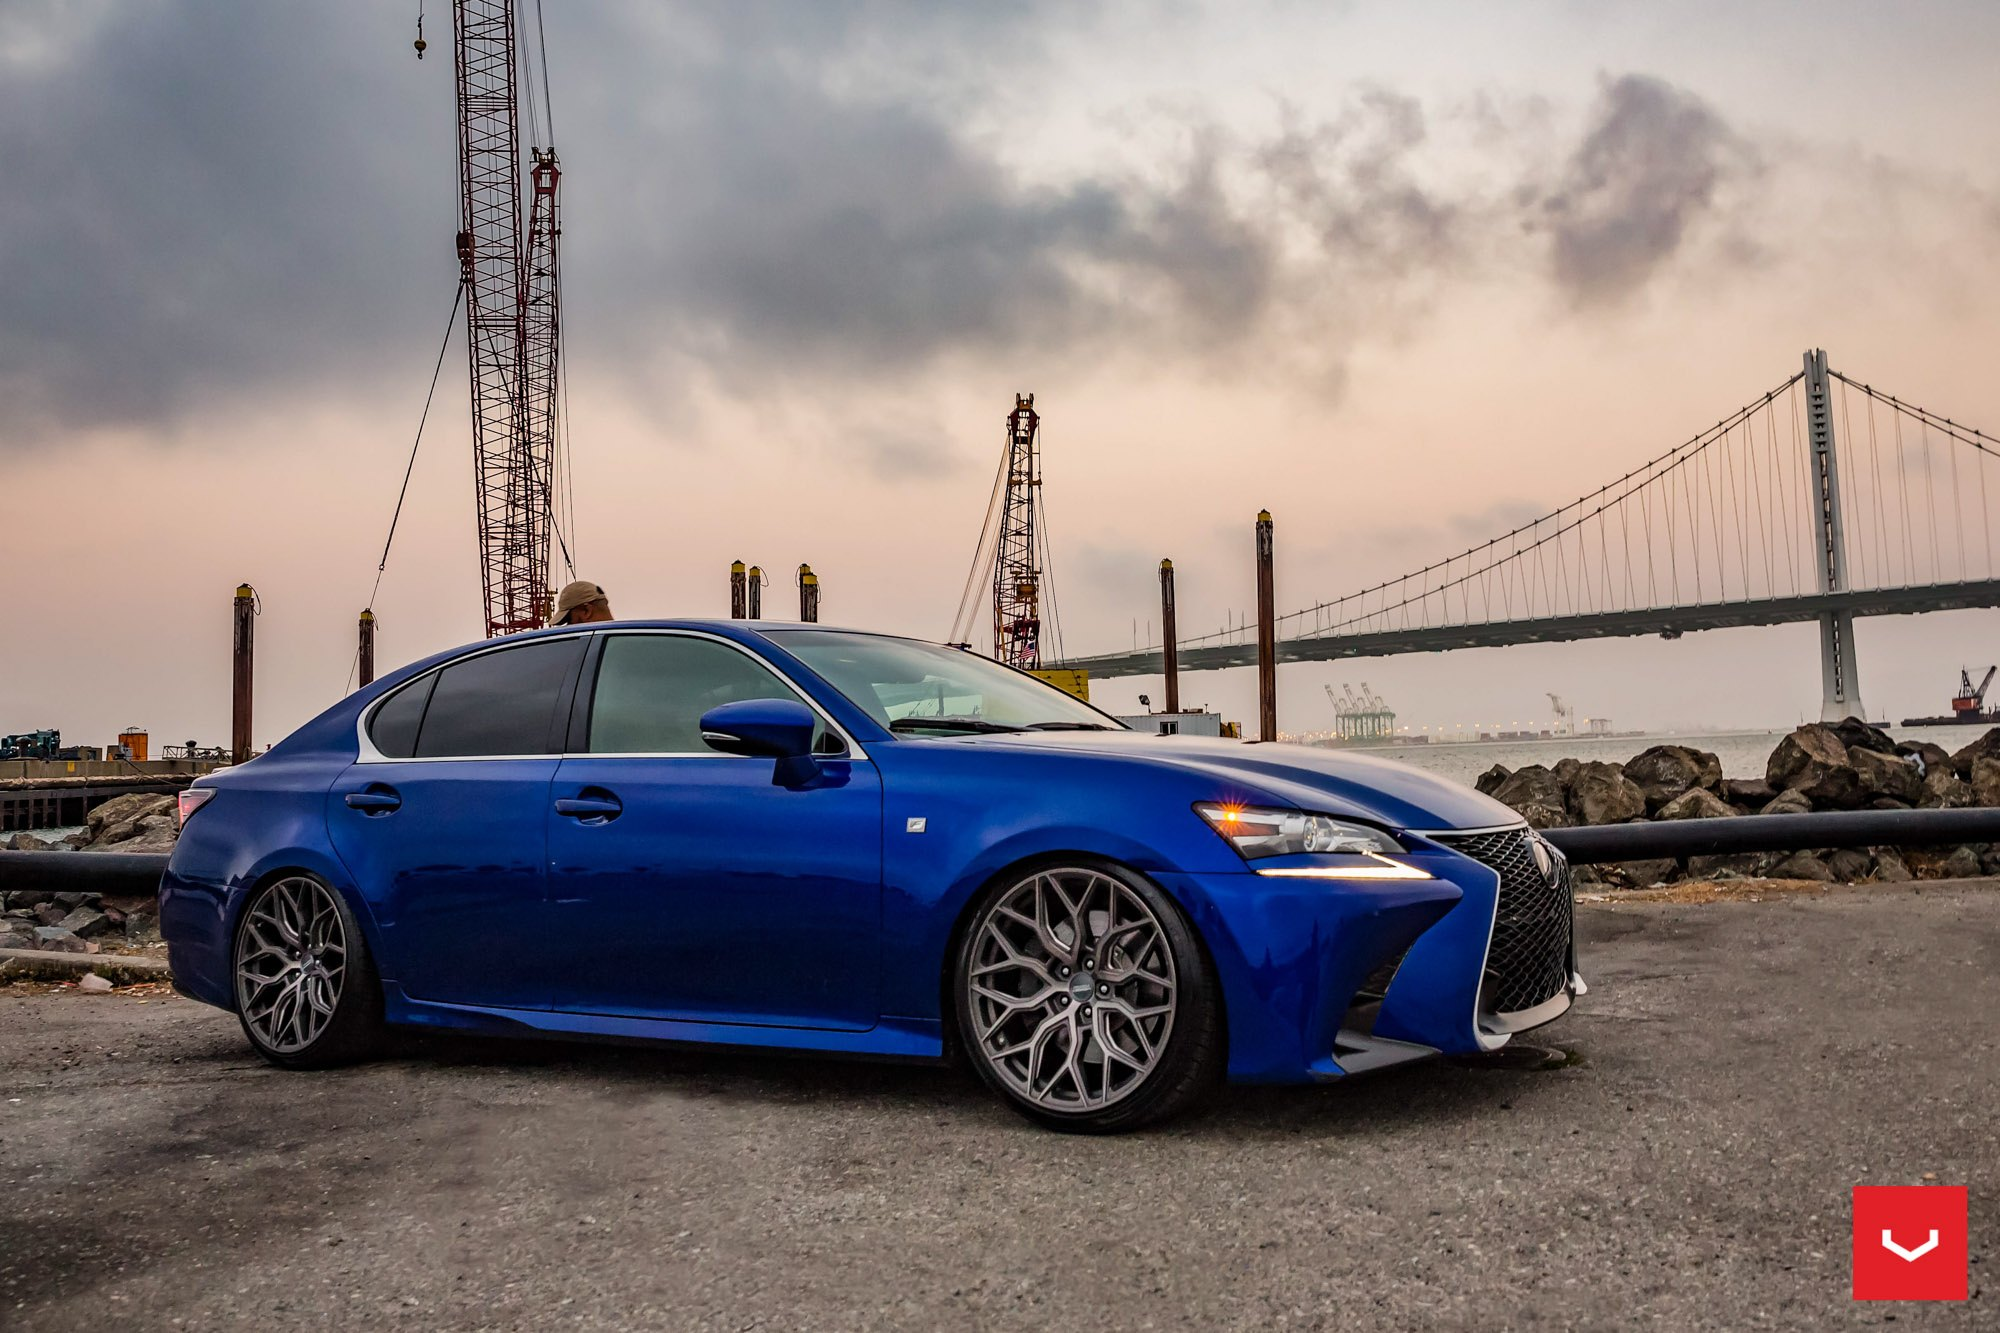 Aftermarket Side Skirts on Blue Lexus GS F - Photo by Vossen